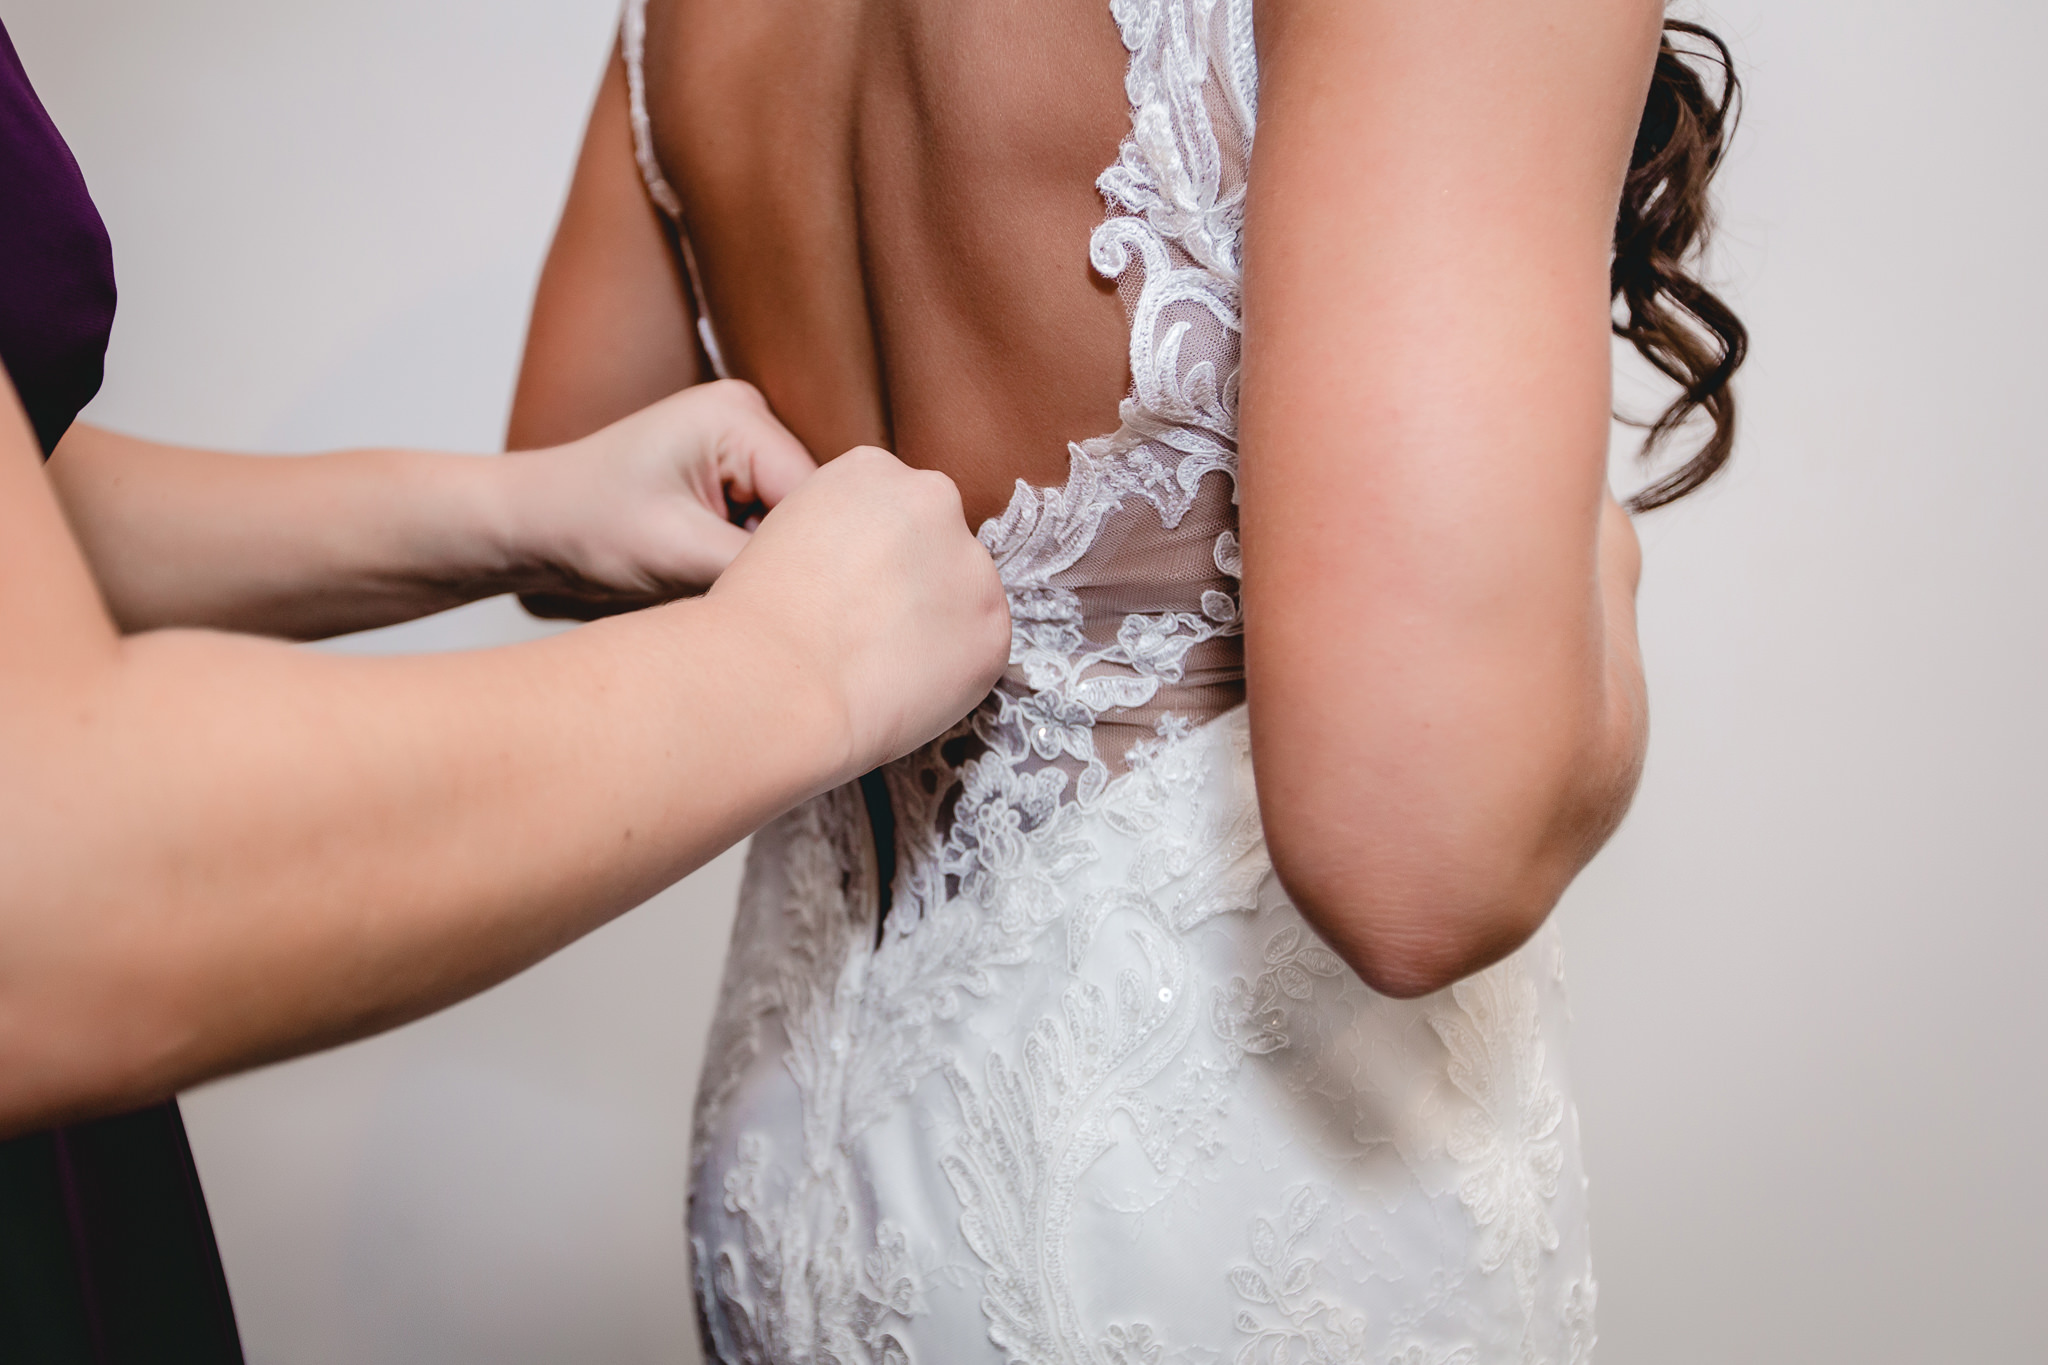 Bridesmaid zips the bride's dress before her wedding ceremony at White Barn